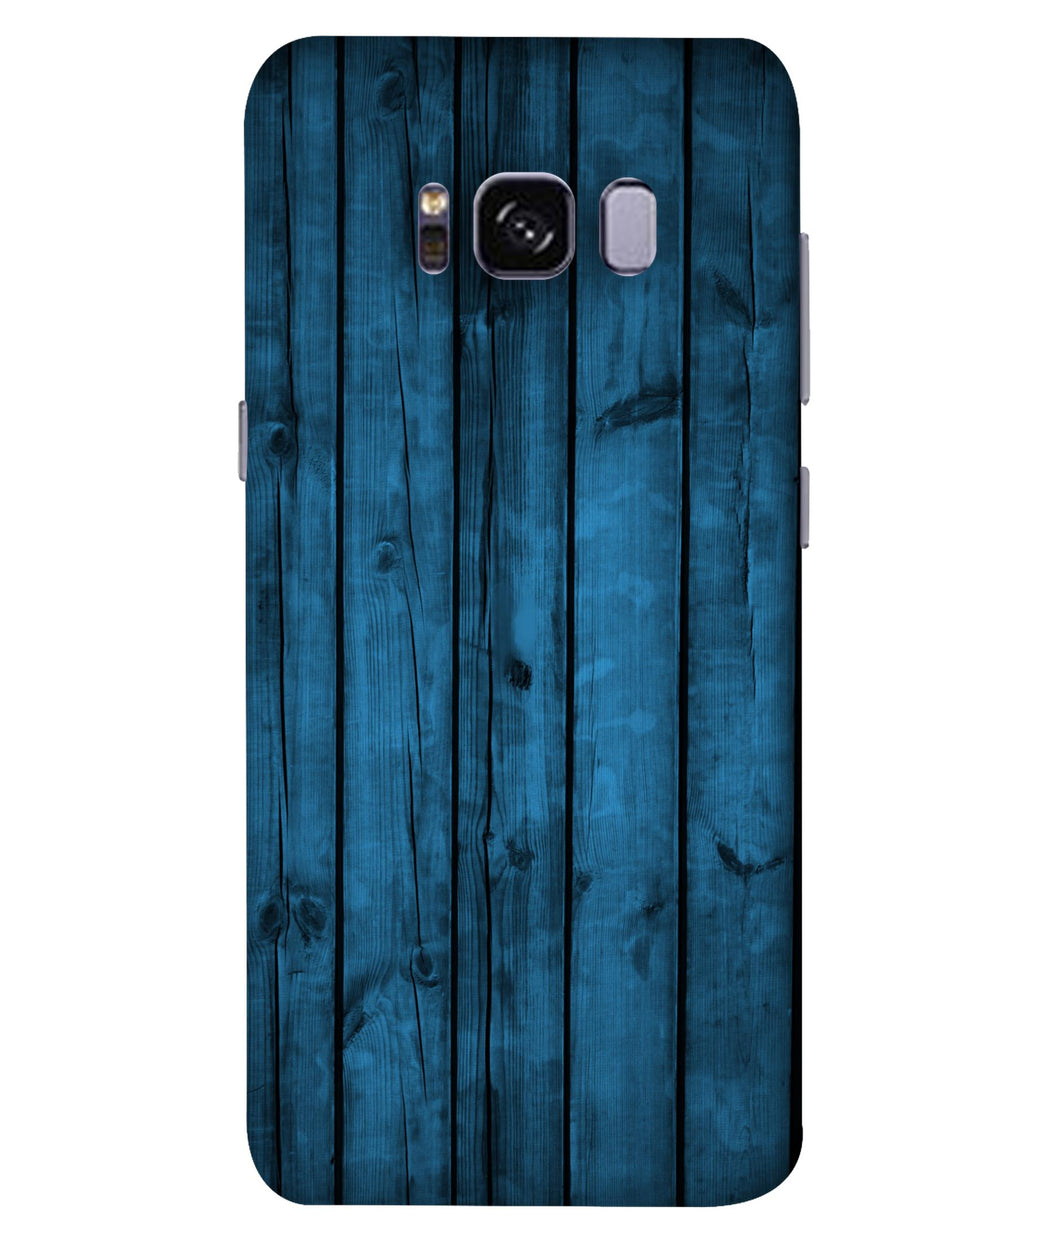 Samsung Galaxy S8 Plus Blue Woods Mobile cover